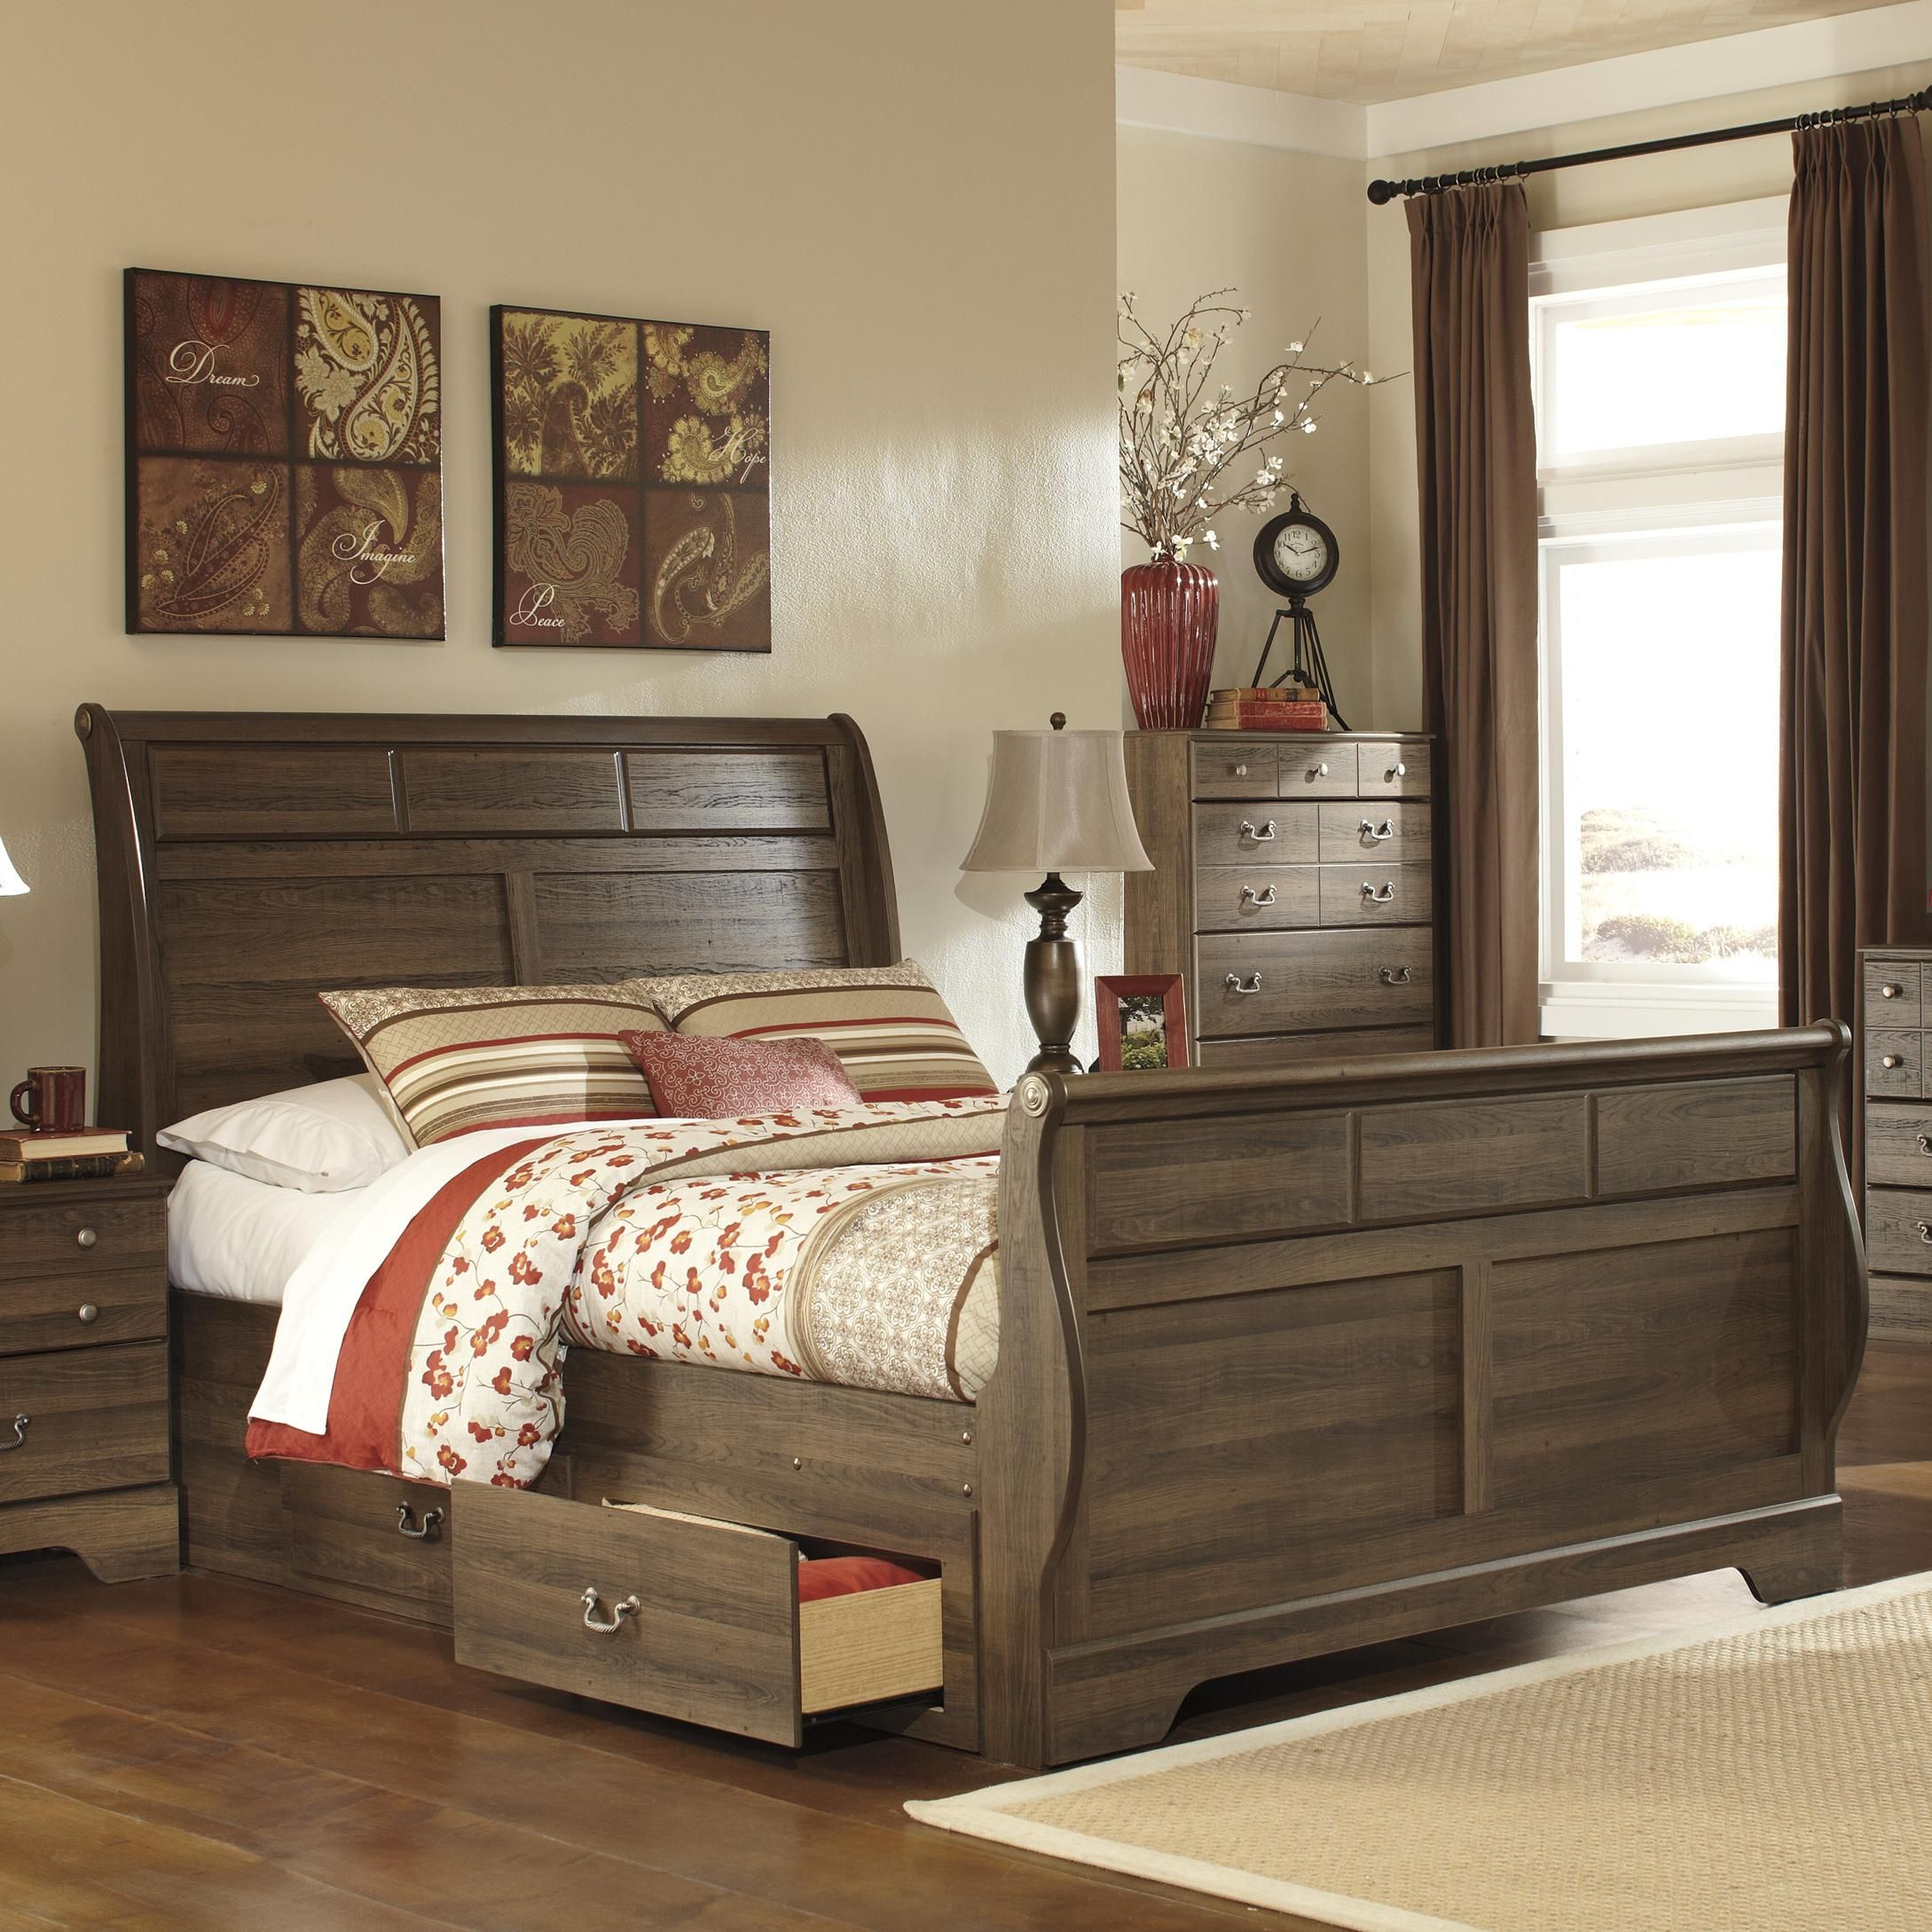 Allymore Queen Sleigh Bed With Under Bed Storagesignature Custom Ashley Bedroom Dressers Decorating Inspiration